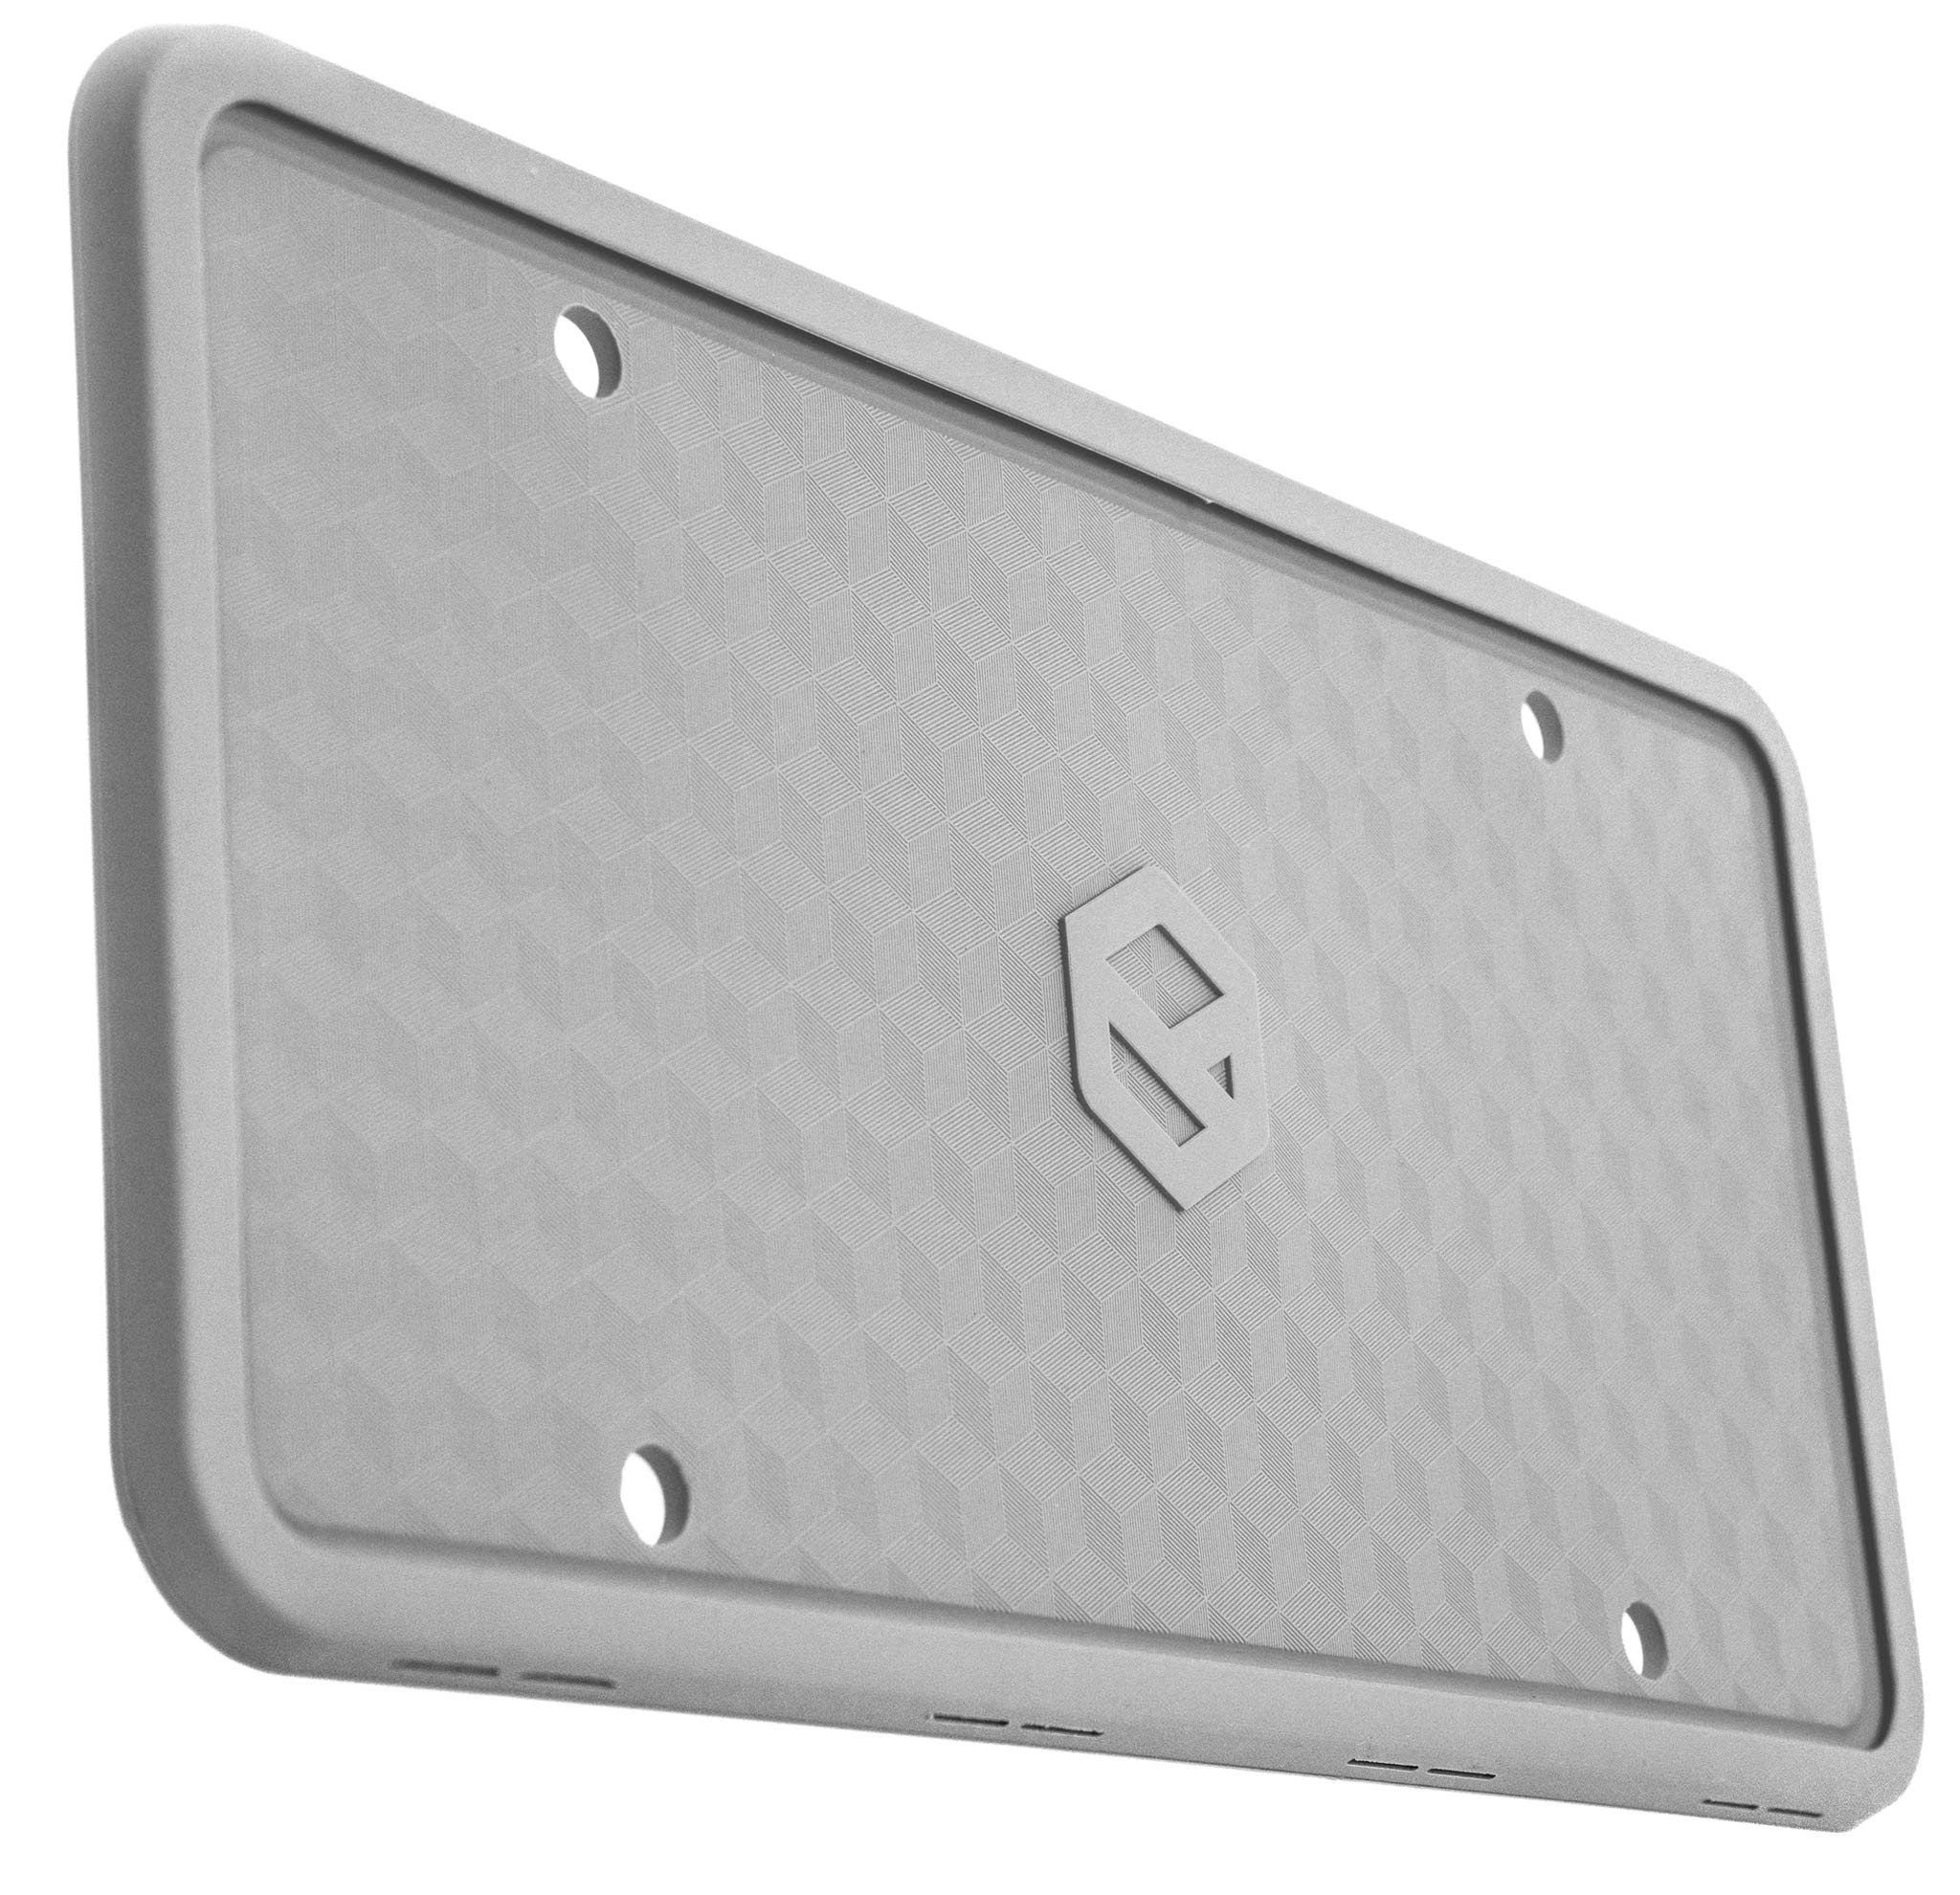 Rightcar Solutions Flawless Silicone License Plate Frame - Black Rust-Proof Weather-Proof Rattle-Proof